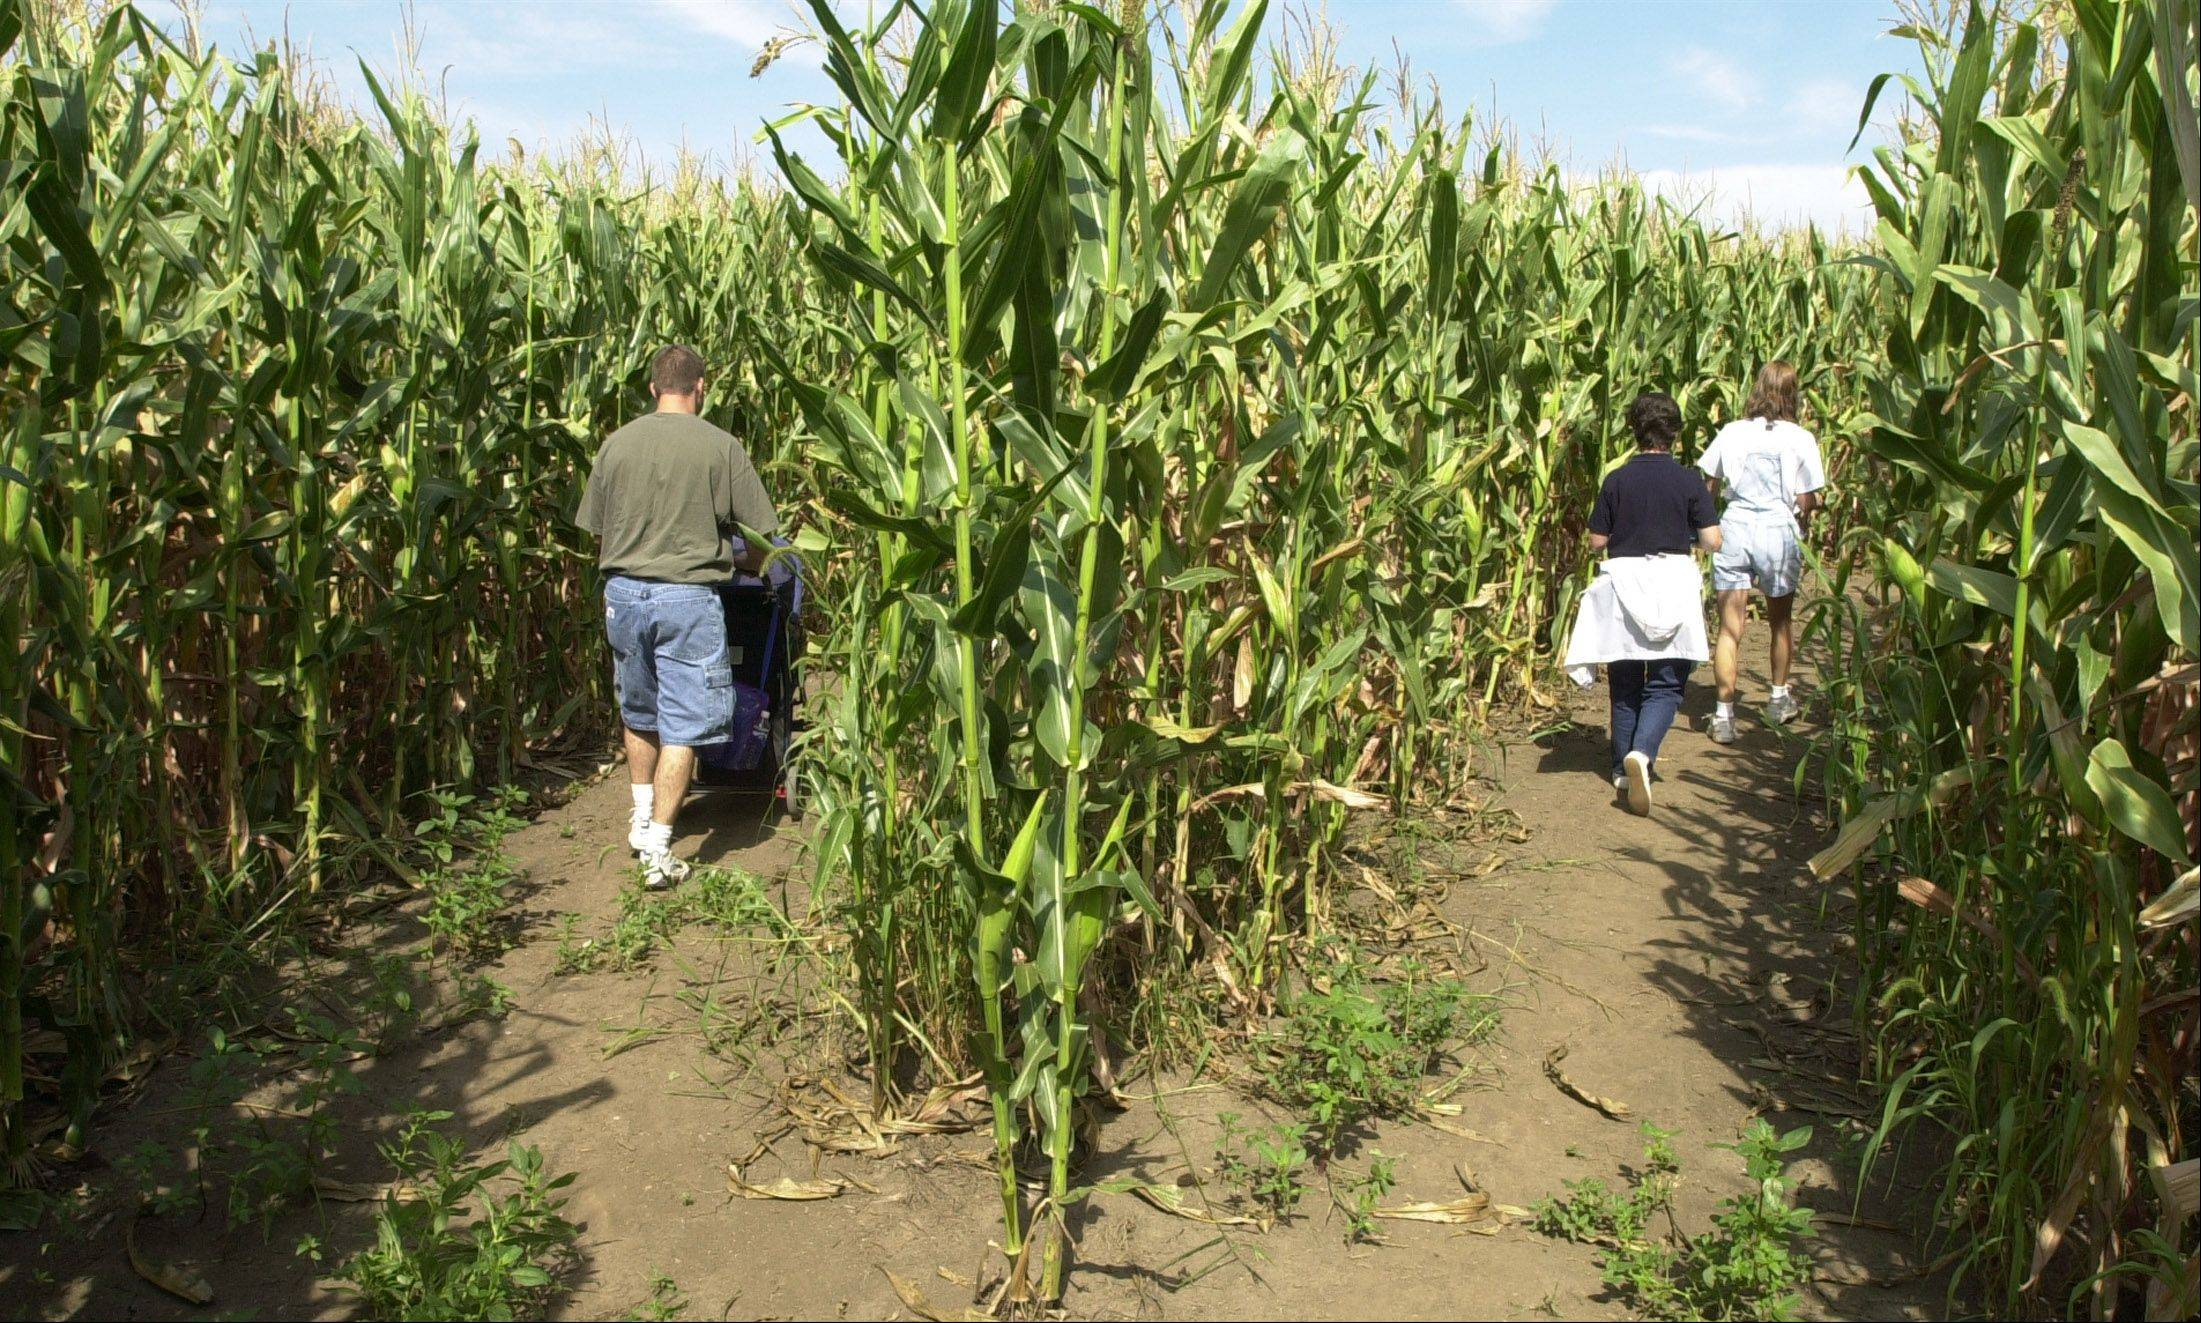 Richardson Farm's maze in Spring Grove goes on for 33 acres.